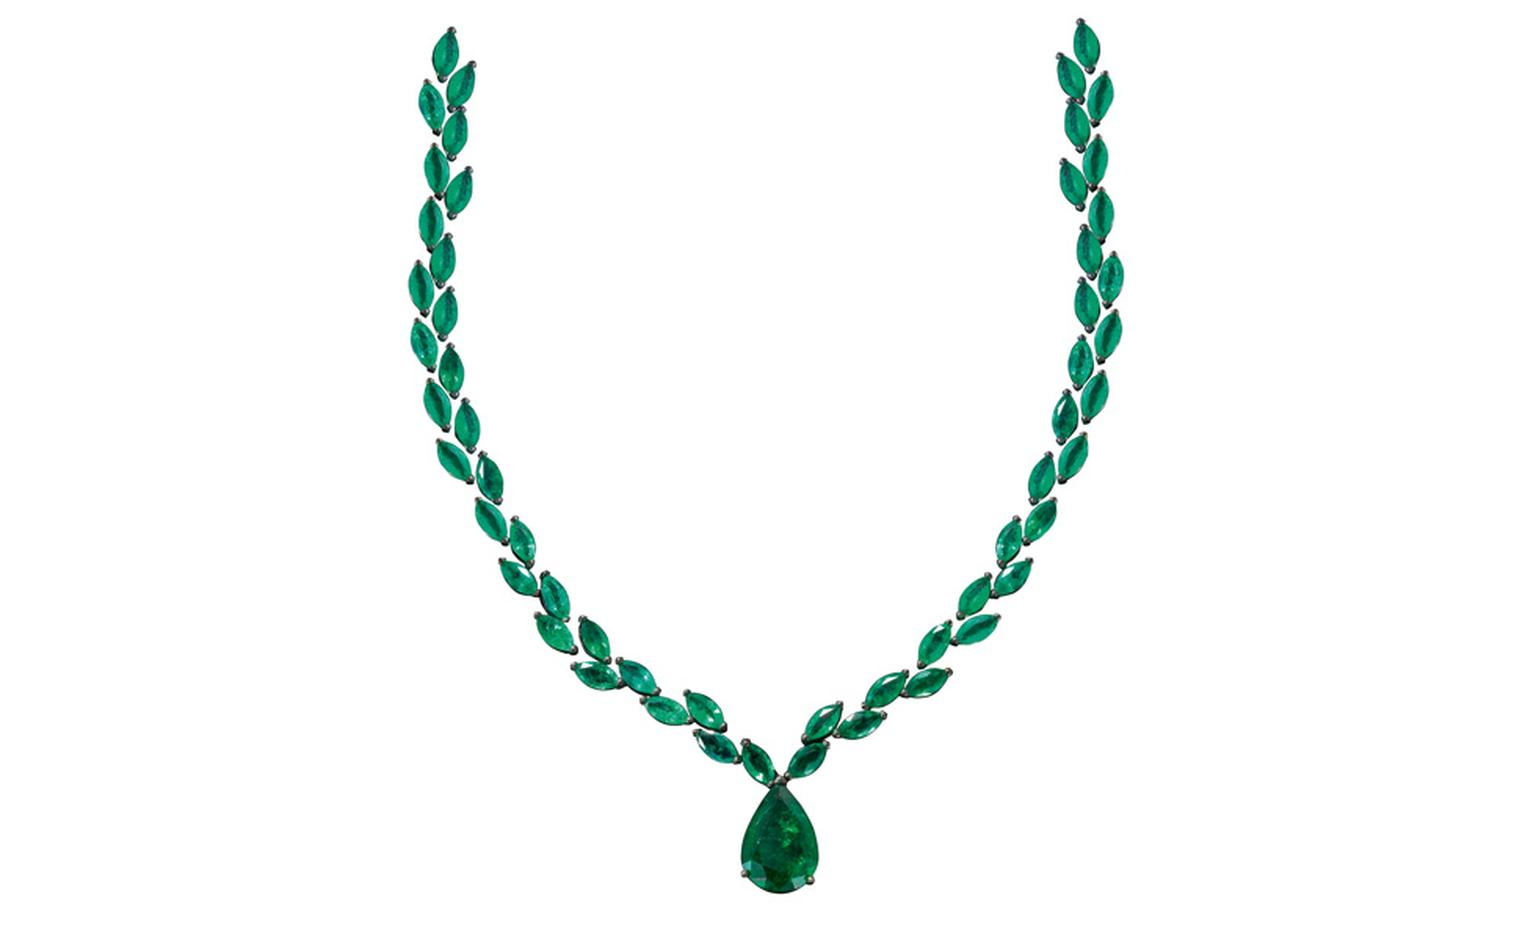 Solange Azagury-Partridge Old Fashioned Necklace worn by Thandie Newton at BAFTAs 2011